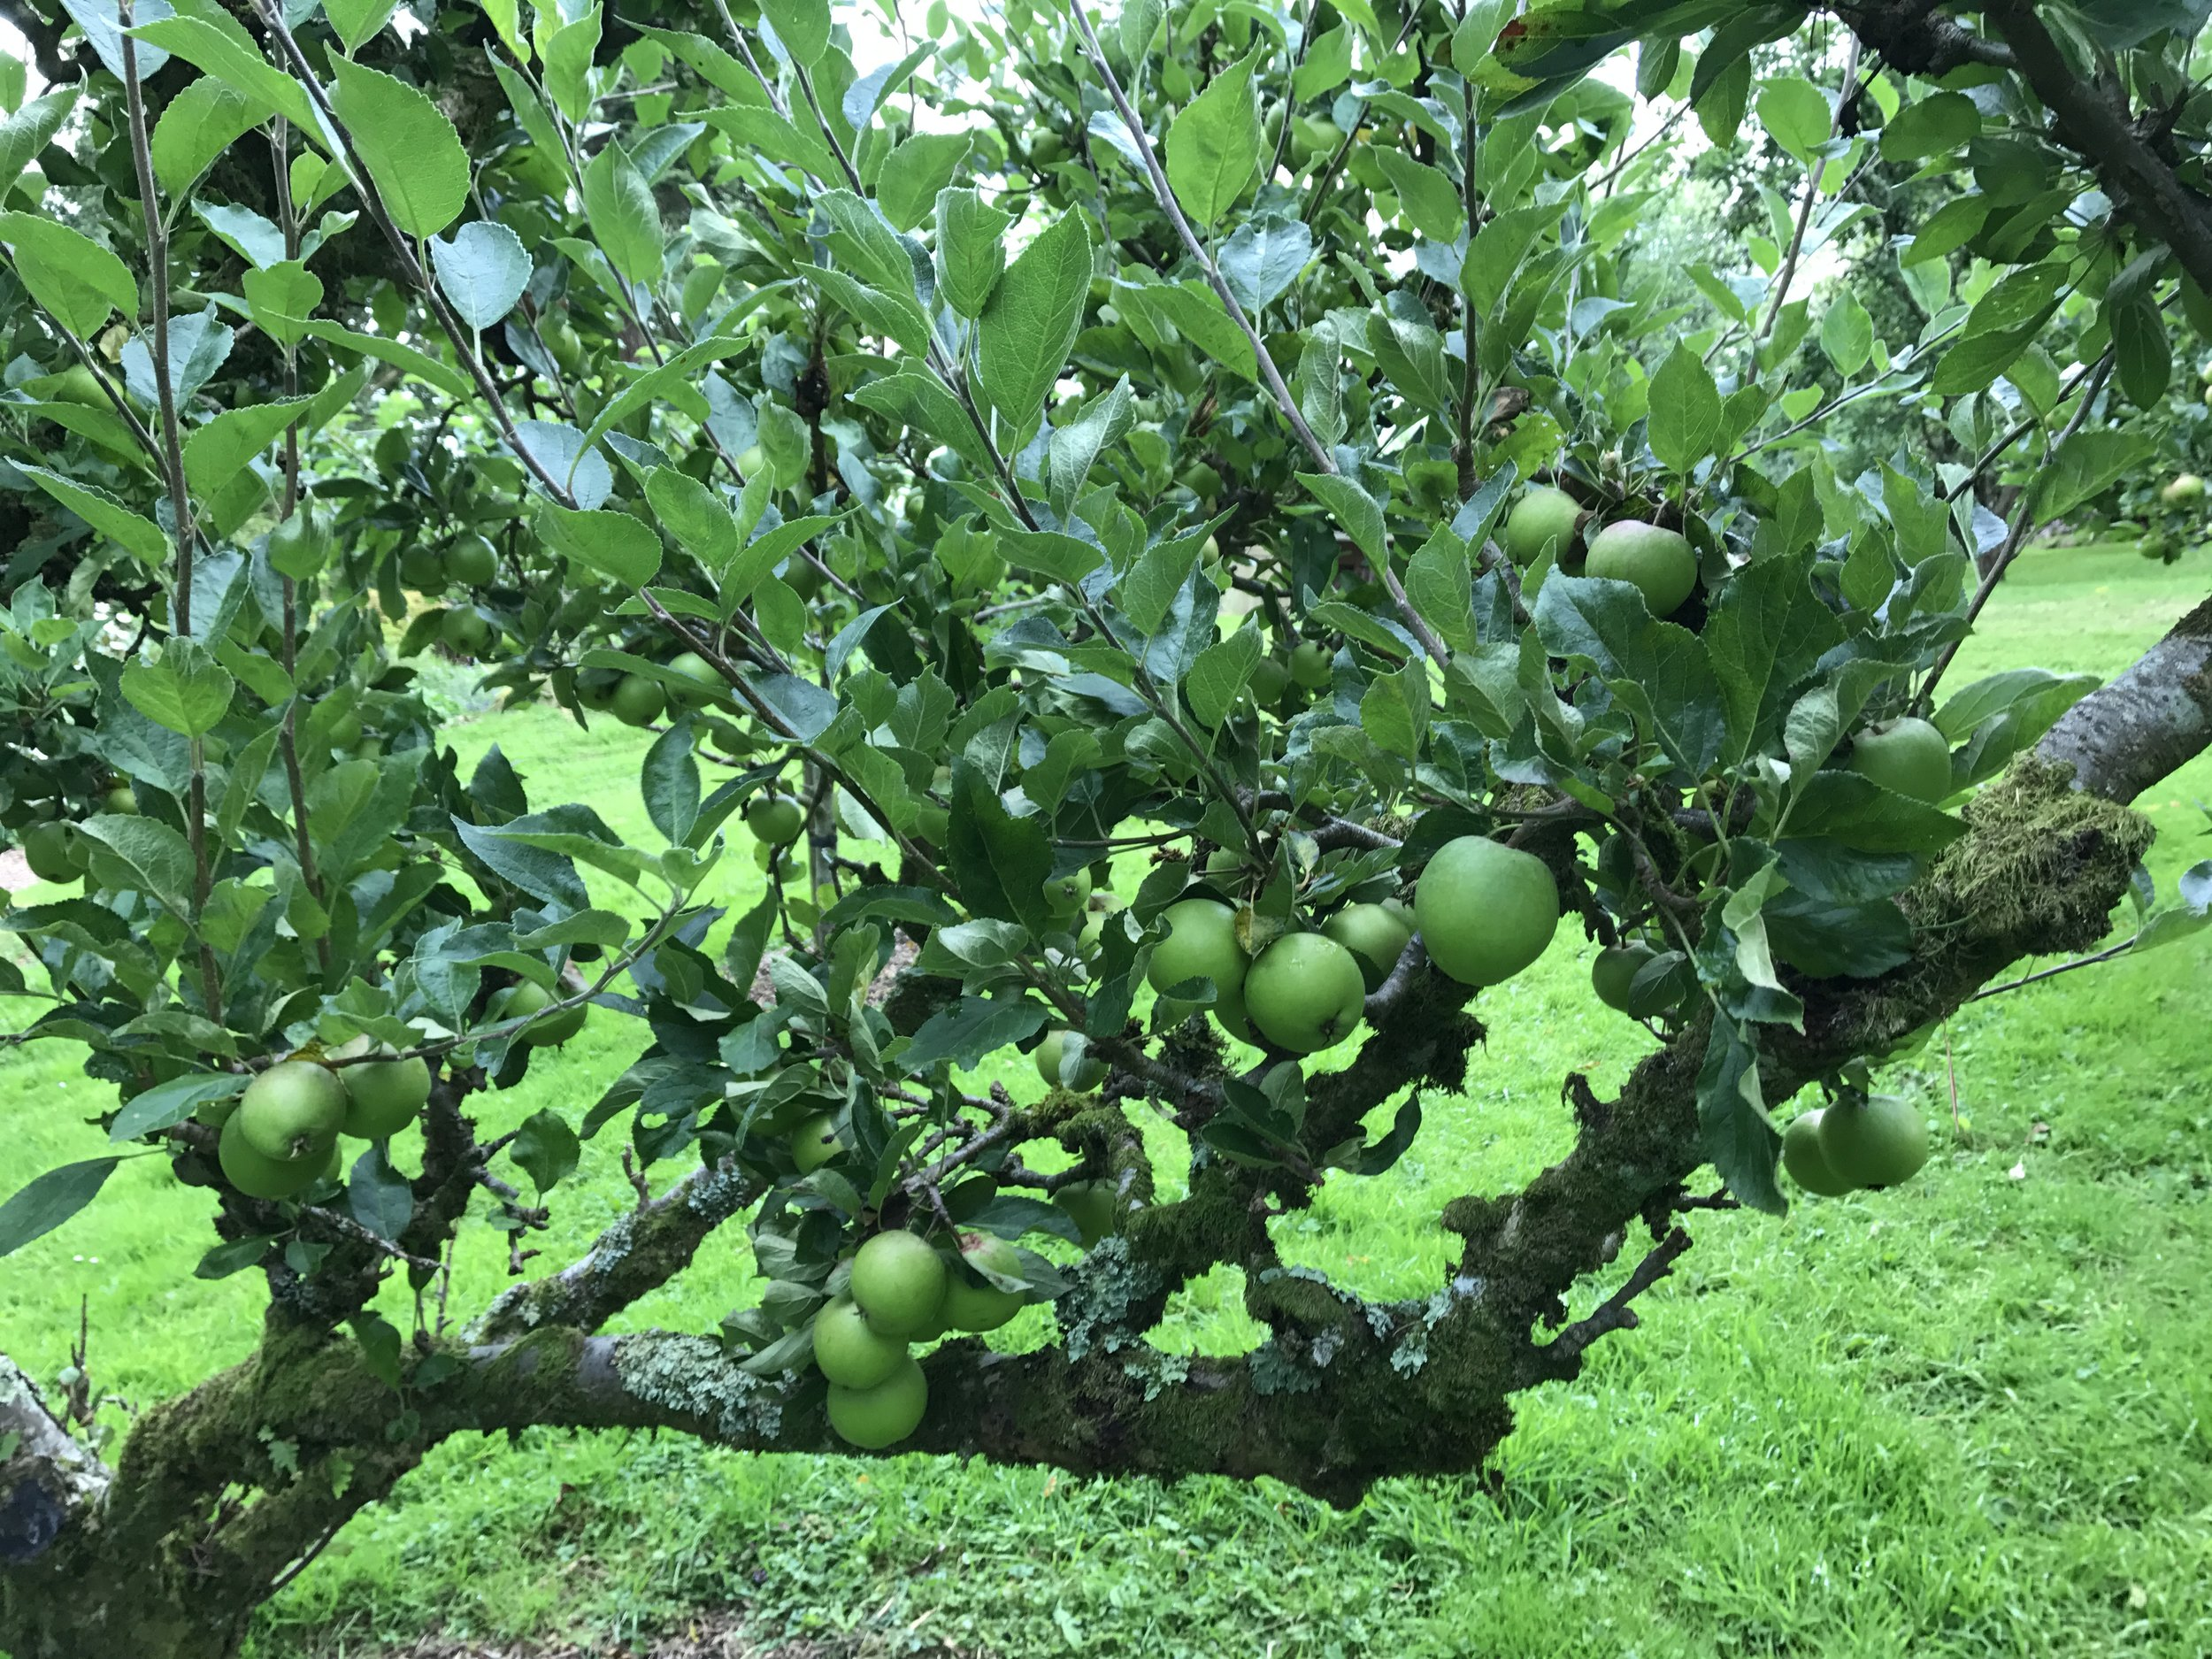 - So began the waiting game  - apple roulette. Nine of the trees are on dwarf rootstock, making the apples easy to pick but also very accessible to even the smallest fallow deer.